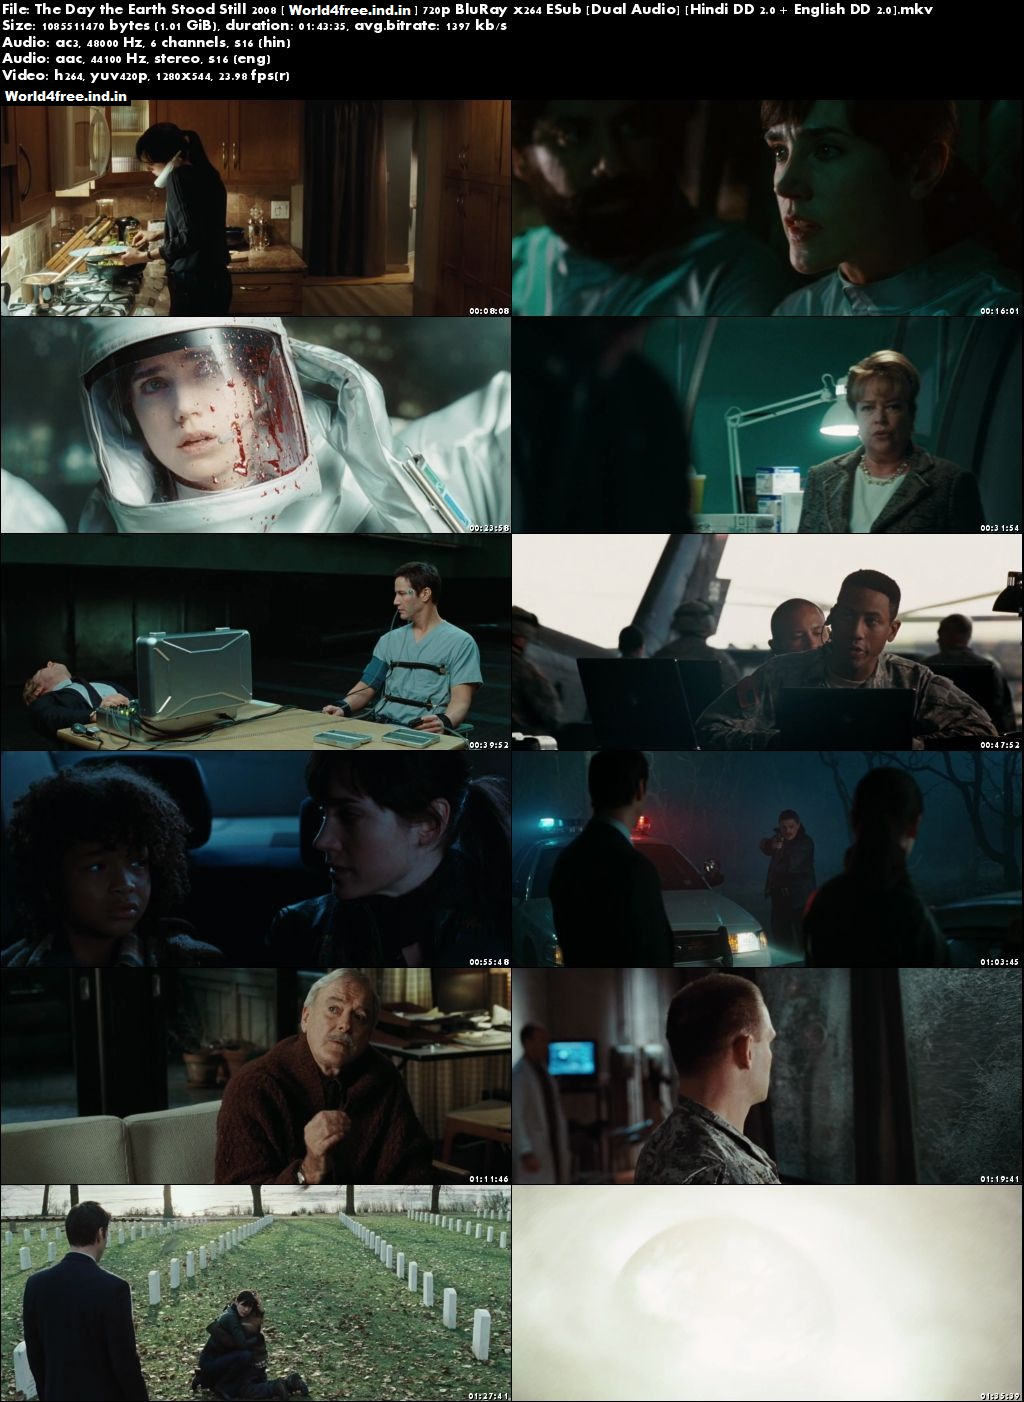 The Day the Earth Stood Still 2008 world4free.ind.in Dual Audio BRRip 720p